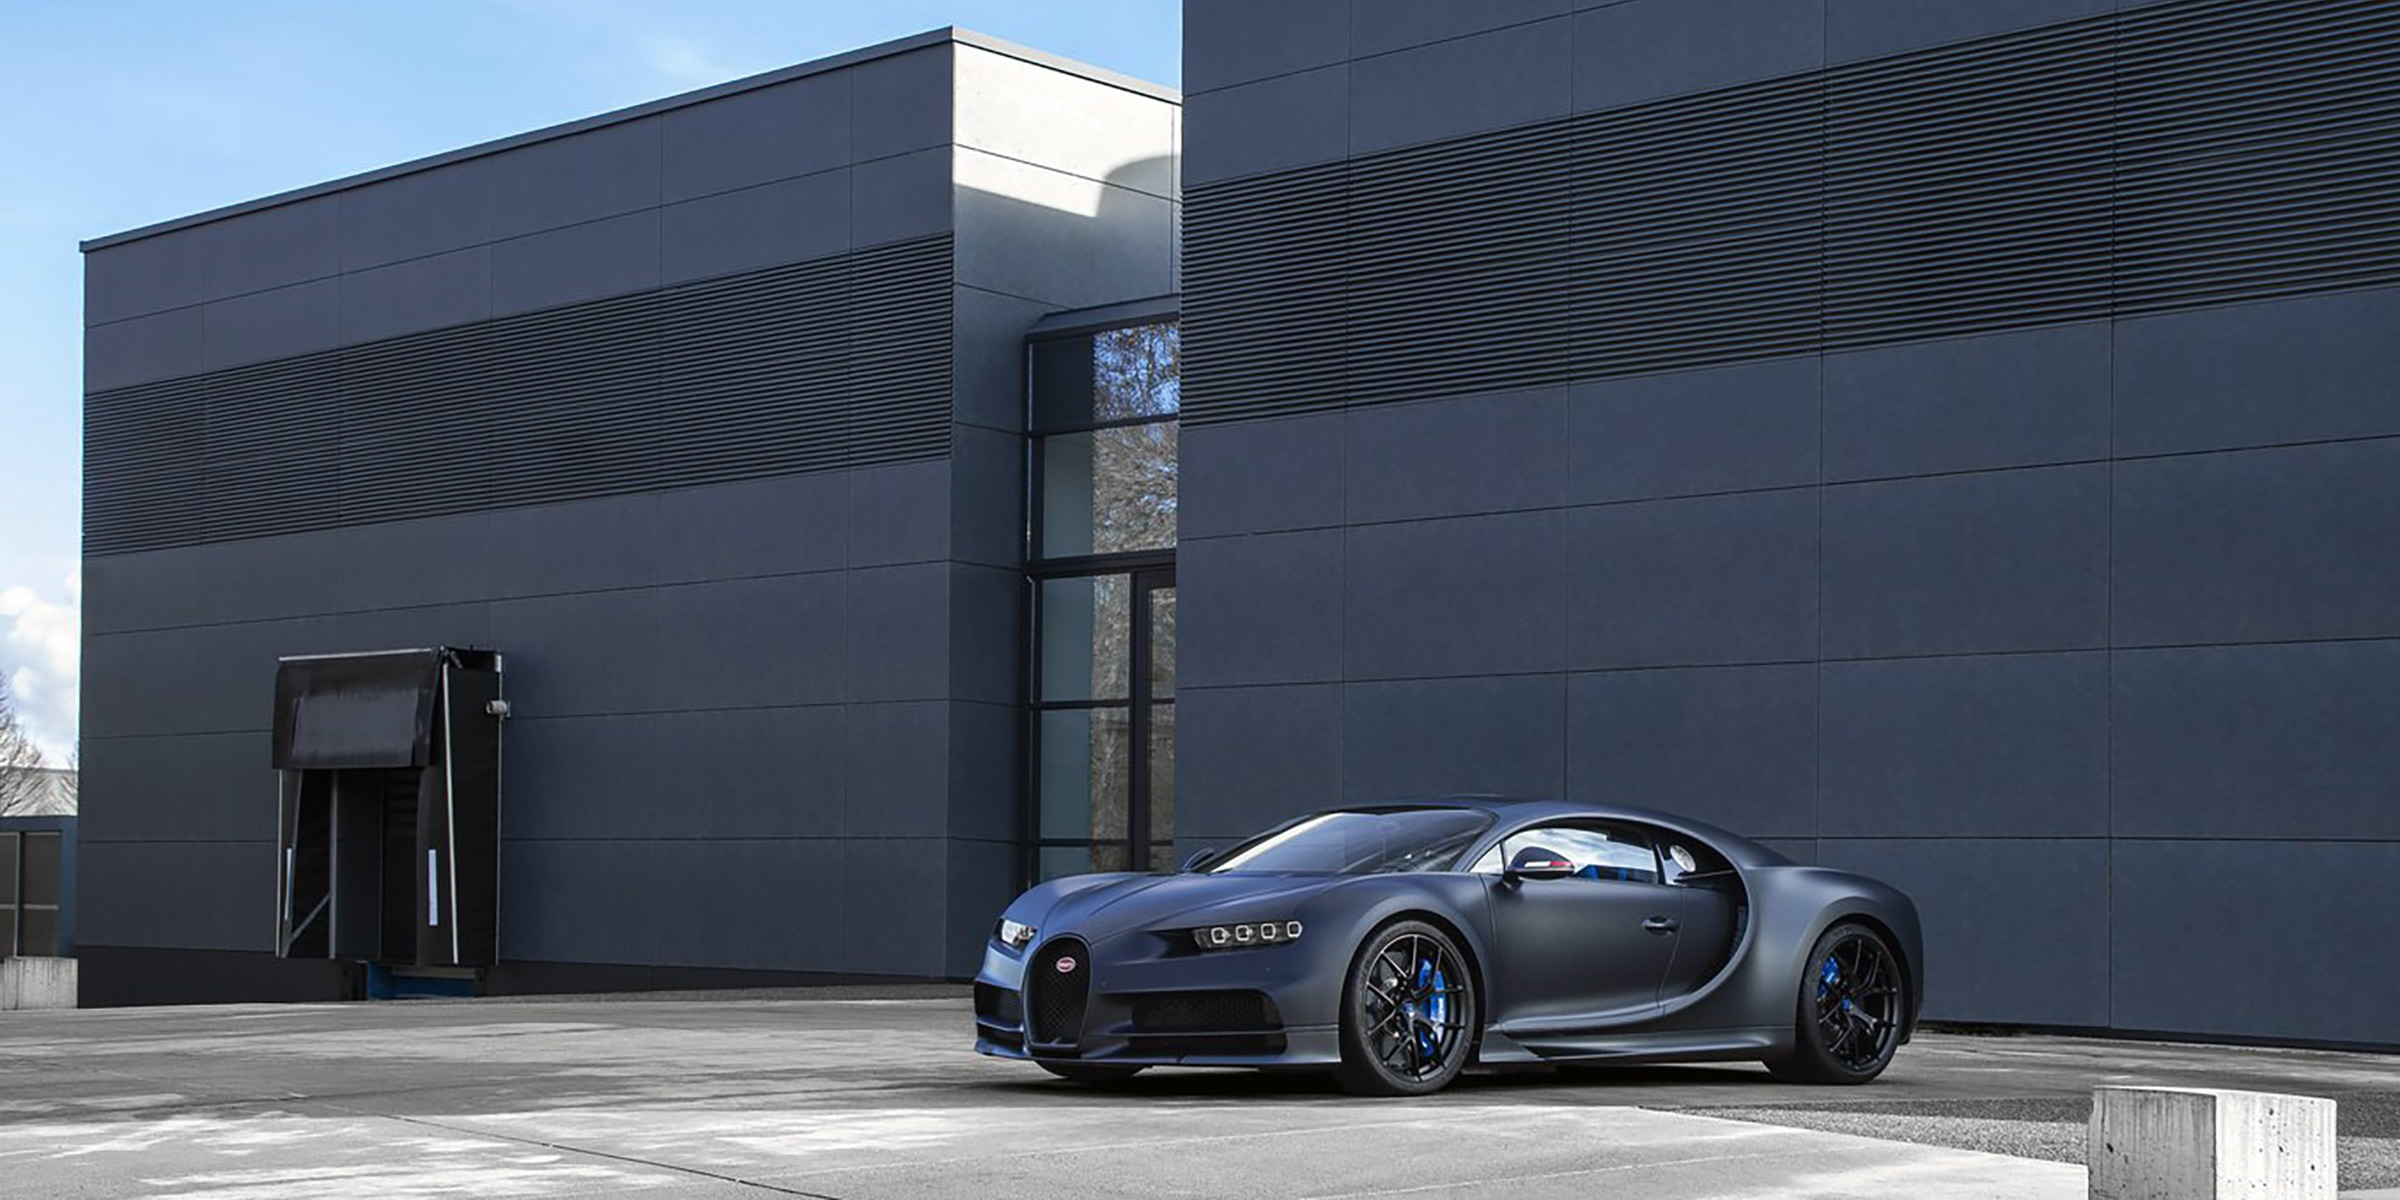 Bugatti Price List 2021 Models Reviews And Specifications